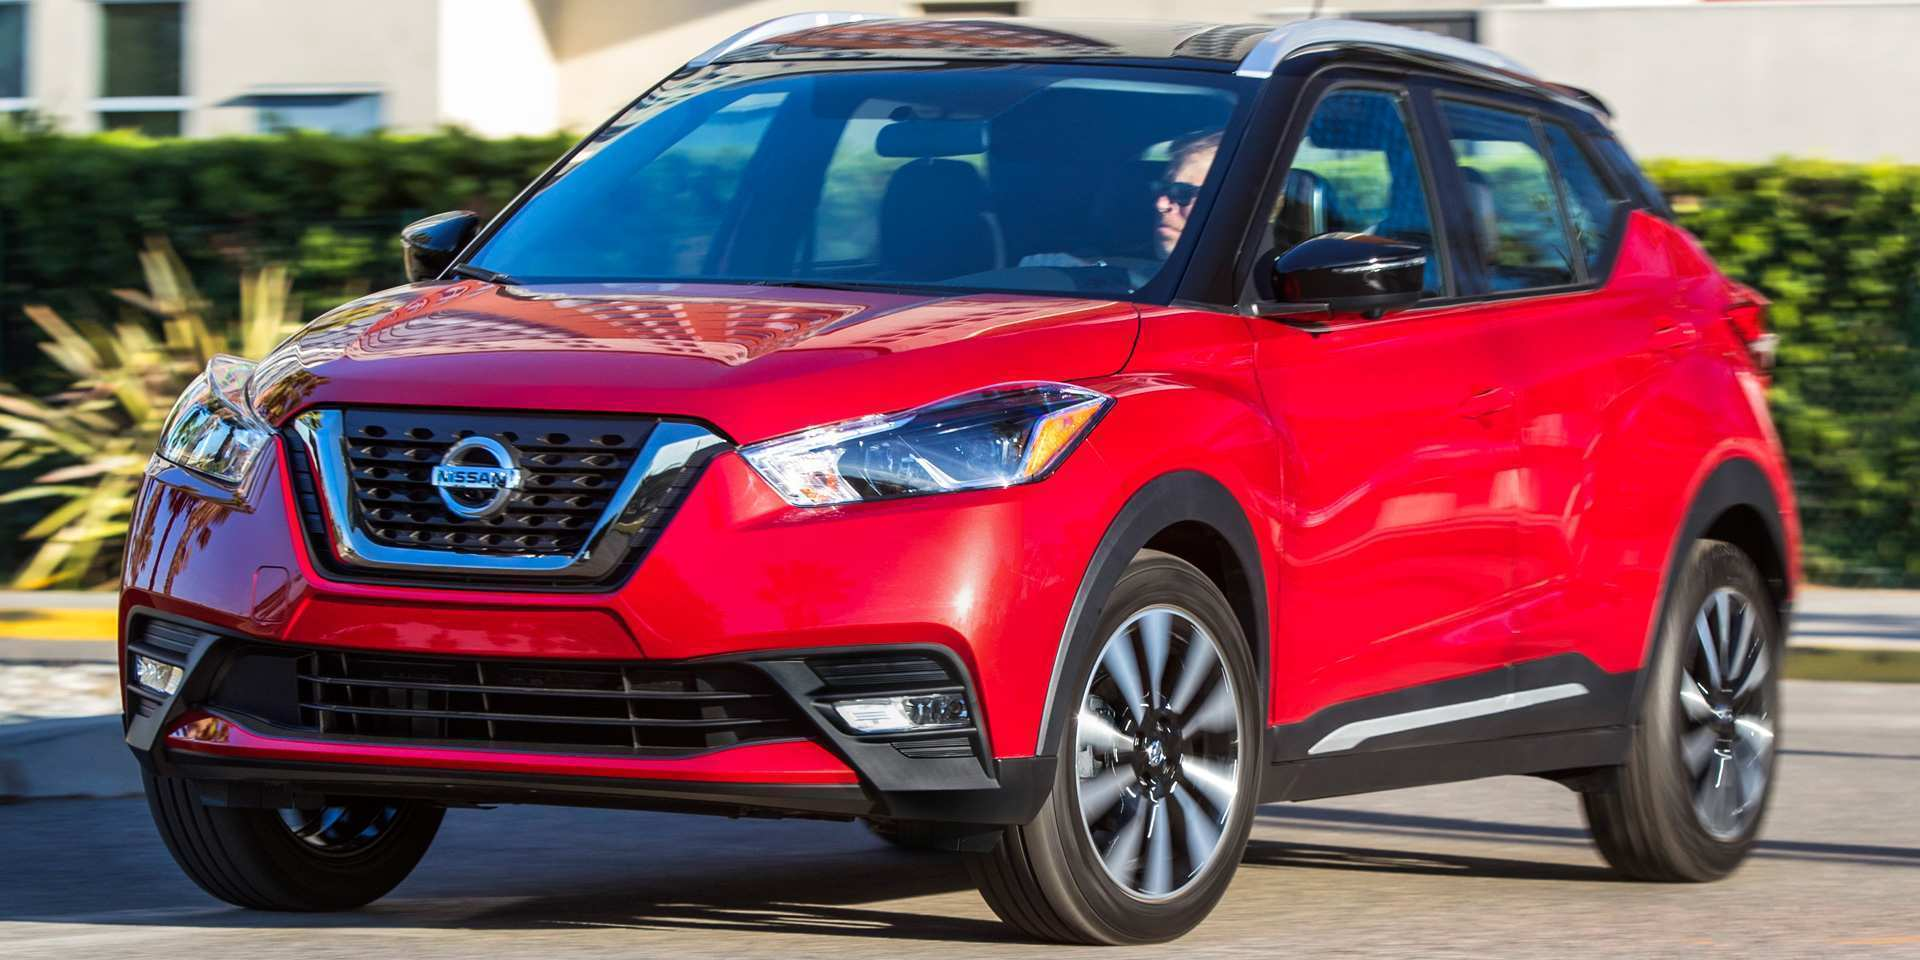 45 Gallery of 2019 Nissan Price with 2019 Nissan